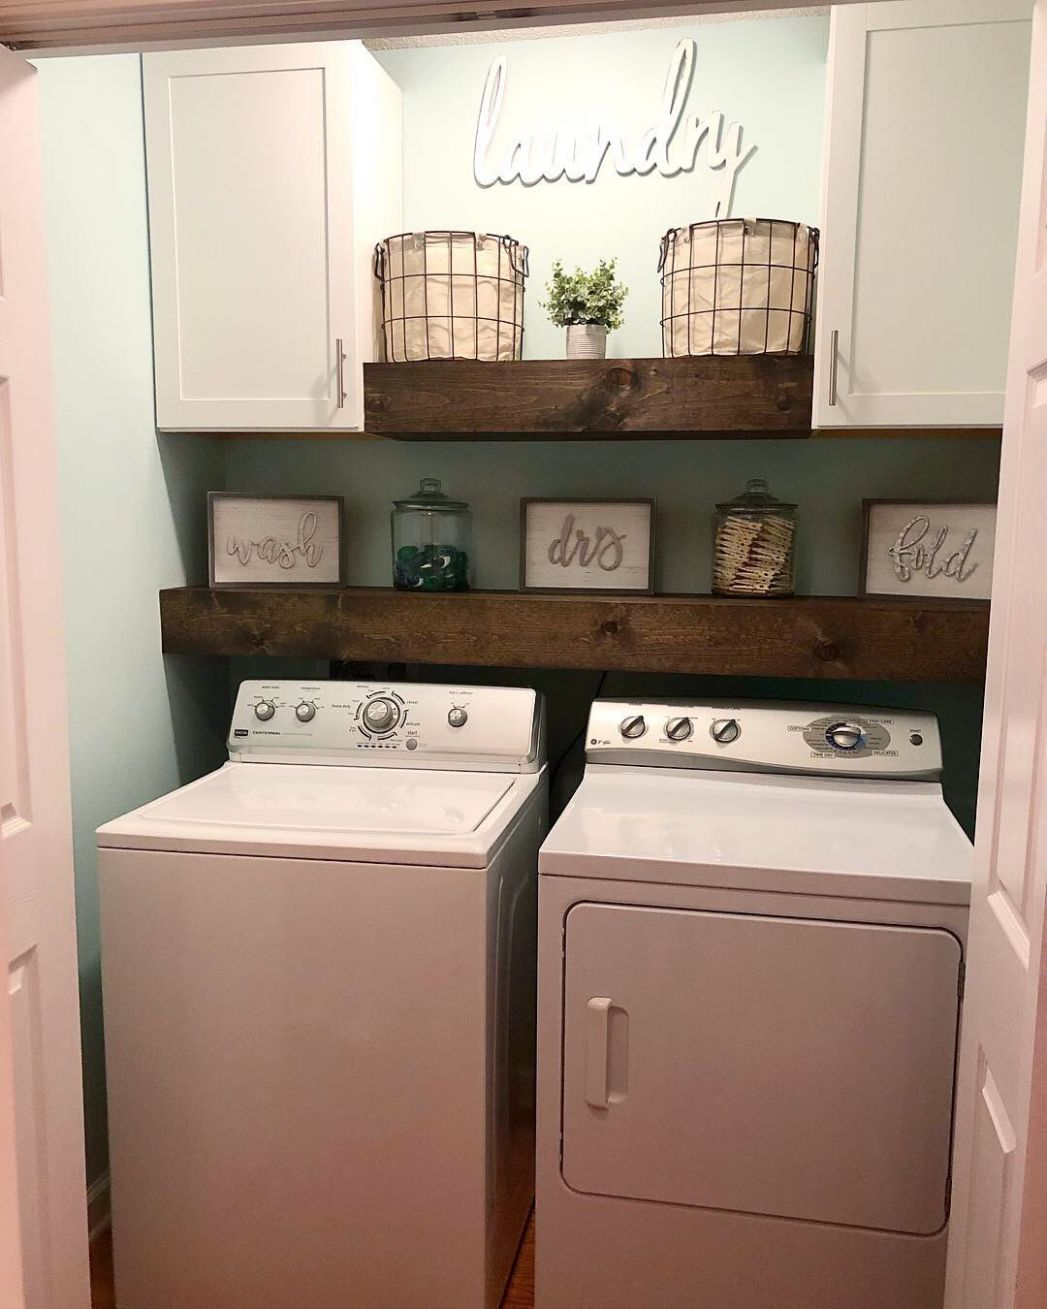 With curtain rod for hanging shirts (With images) | Laundry room diy - laundry room ideas in garage